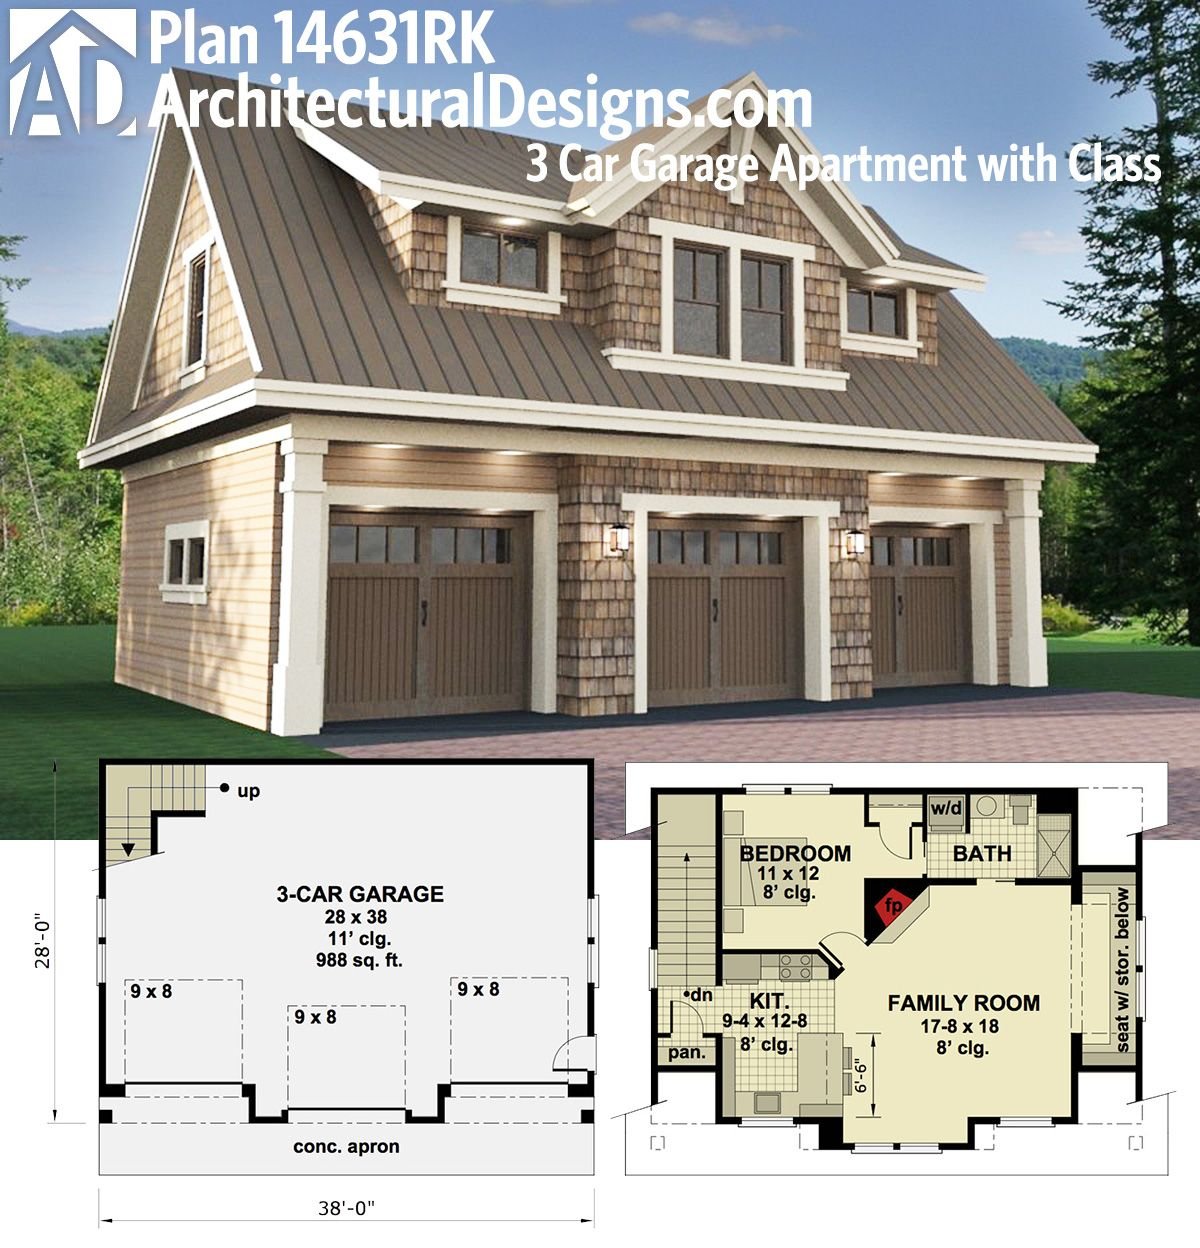 Plan 14631rk 3 car garage apartment with class for House plans with 4 car attached garage